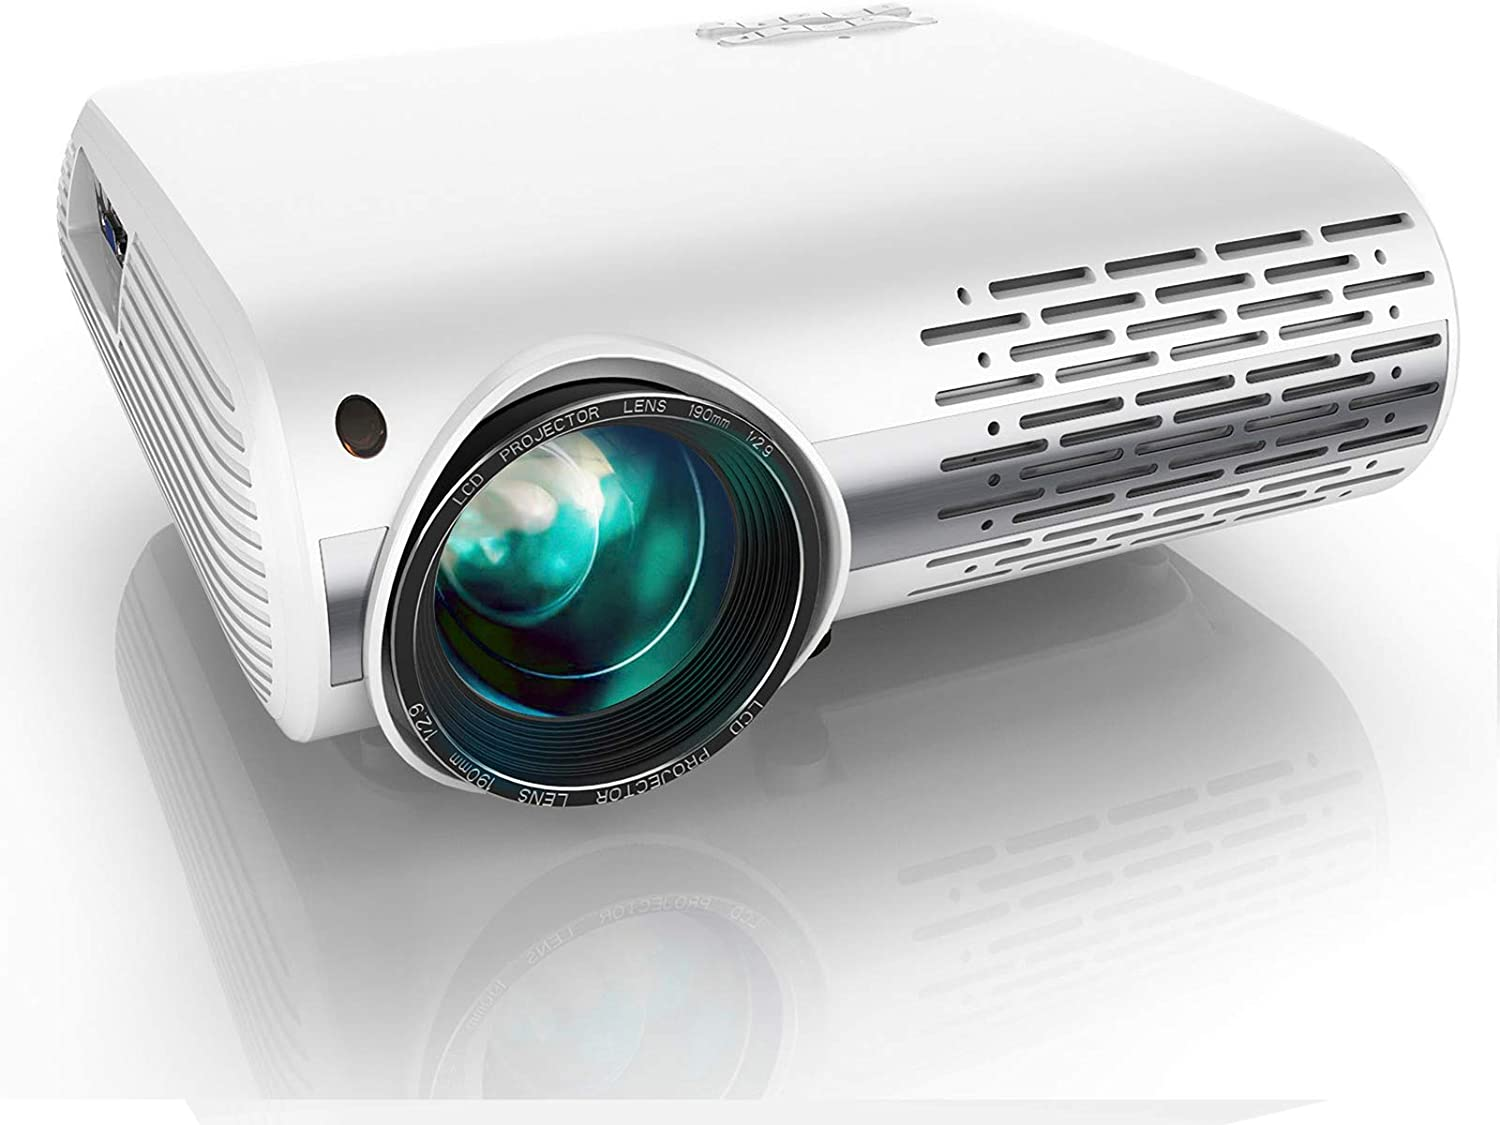 YABER Y30 Native 1080P Projector 7000 Lux Upgrade Full HD Video Projector 1920 x 1080, ±50° 4D Keystone Correction Support 4k & Zoom,LCD LED Home Theater Projector Compatible with Phone,PC,TV Box,PS4: Electronics